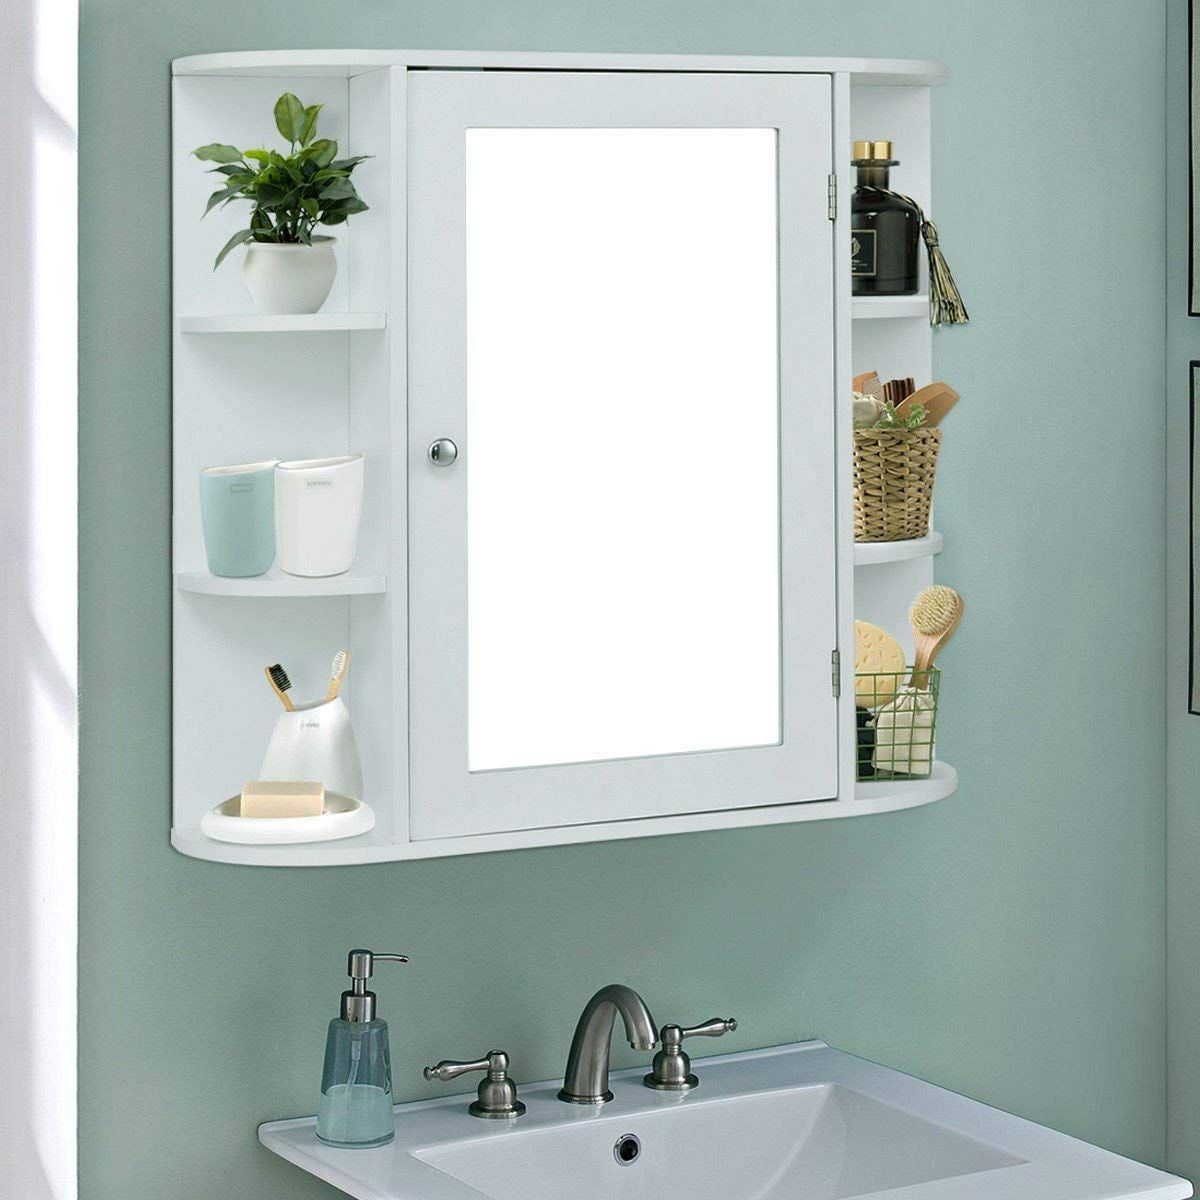 Giantex Wall Mounted Bathroom Storage Cabinet Multipurpose Organizer With Mirror Wall Mounted Bathroom Cabinets Bathroom Floor Cabinets Wood Bathroom Cabinets [ 1200 x 1200 Pixel ]